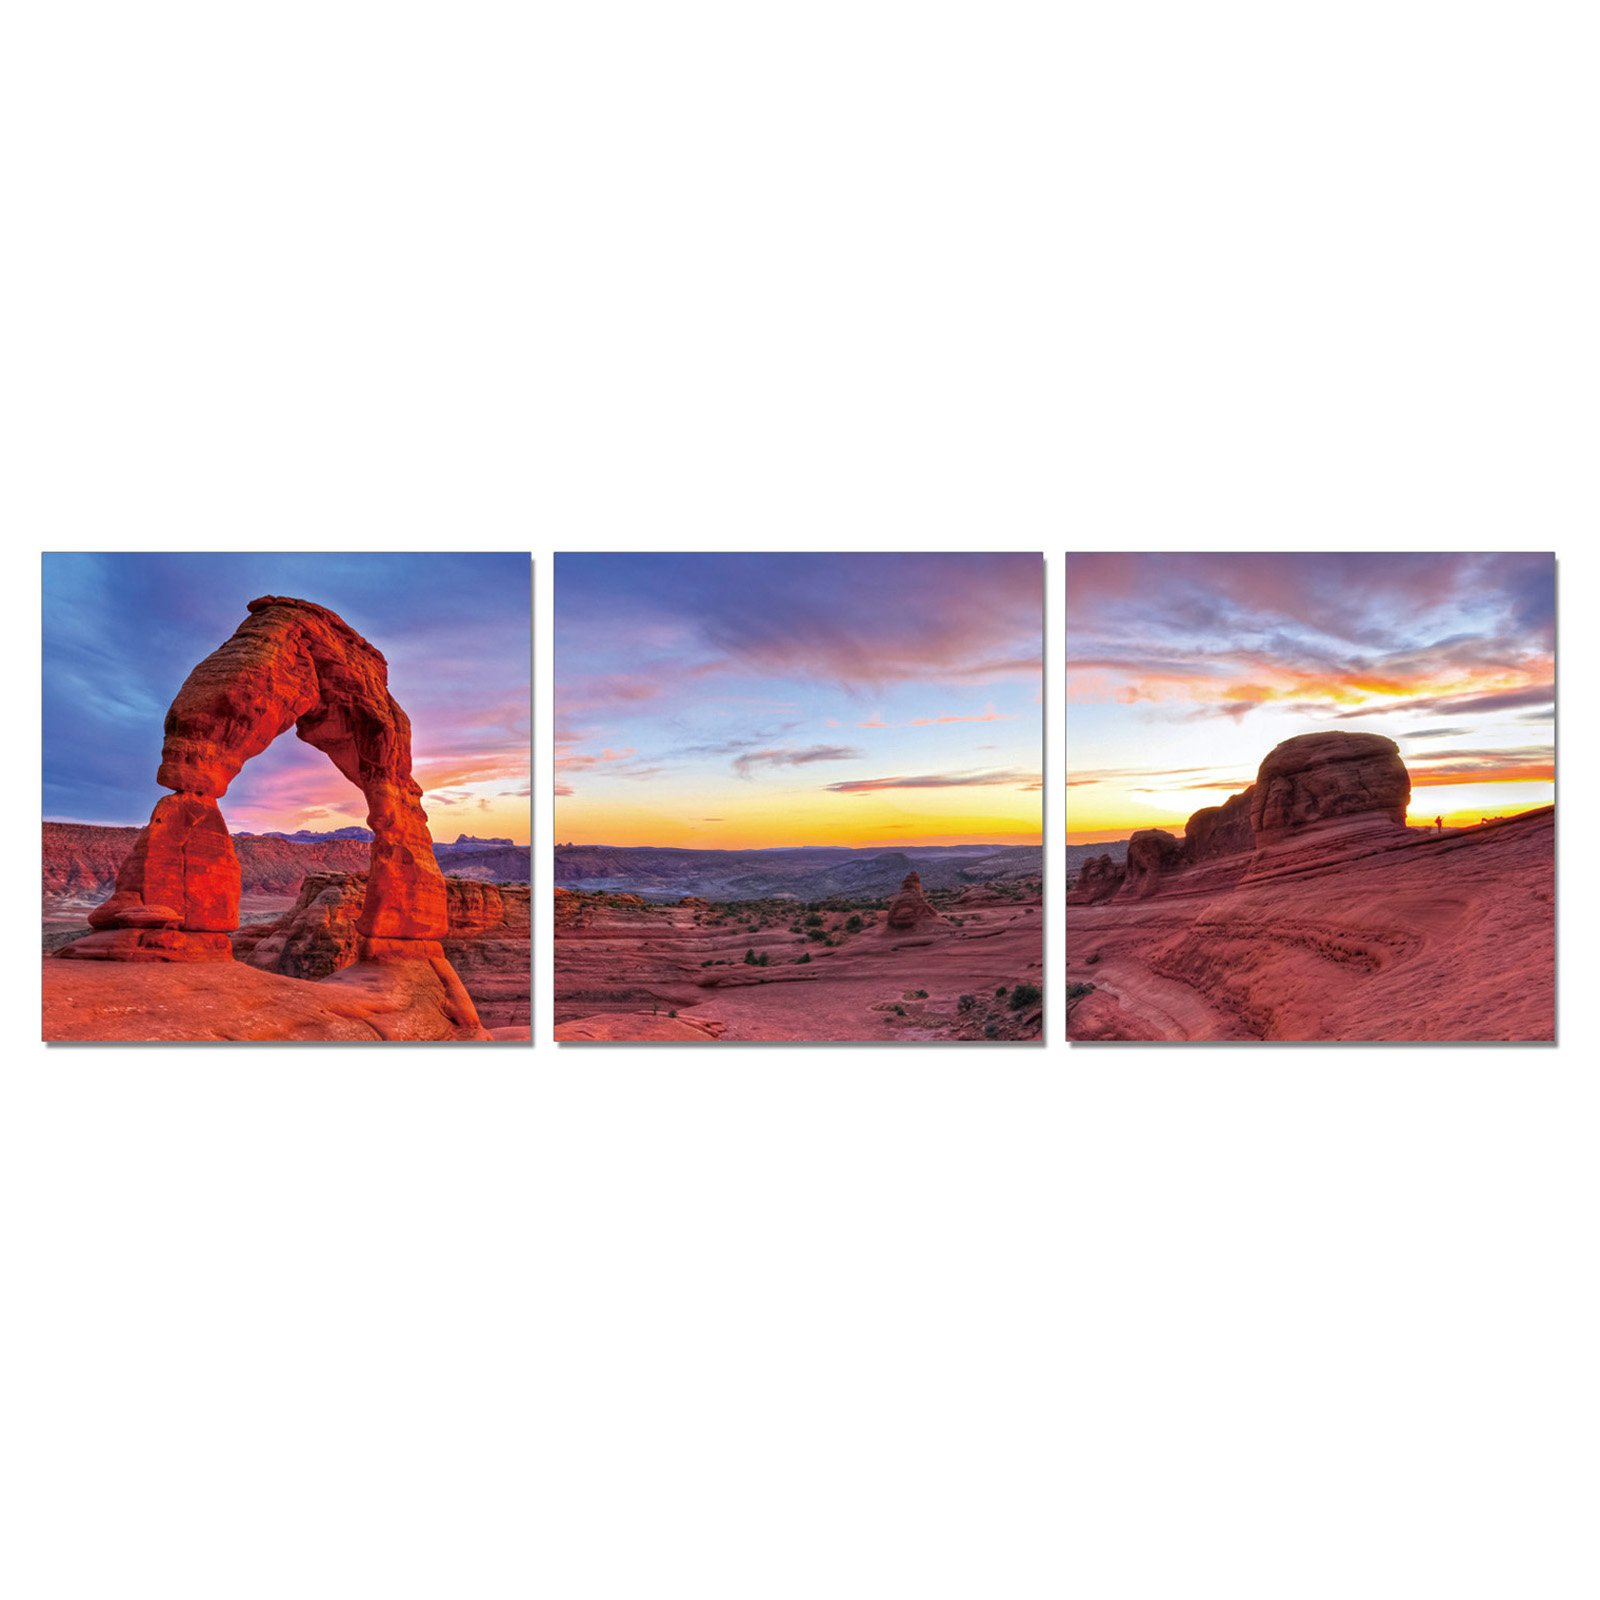 Furinno SENIC Declicate Arch 3-Panel Canvas on Wood Frame, 60 x 20-in